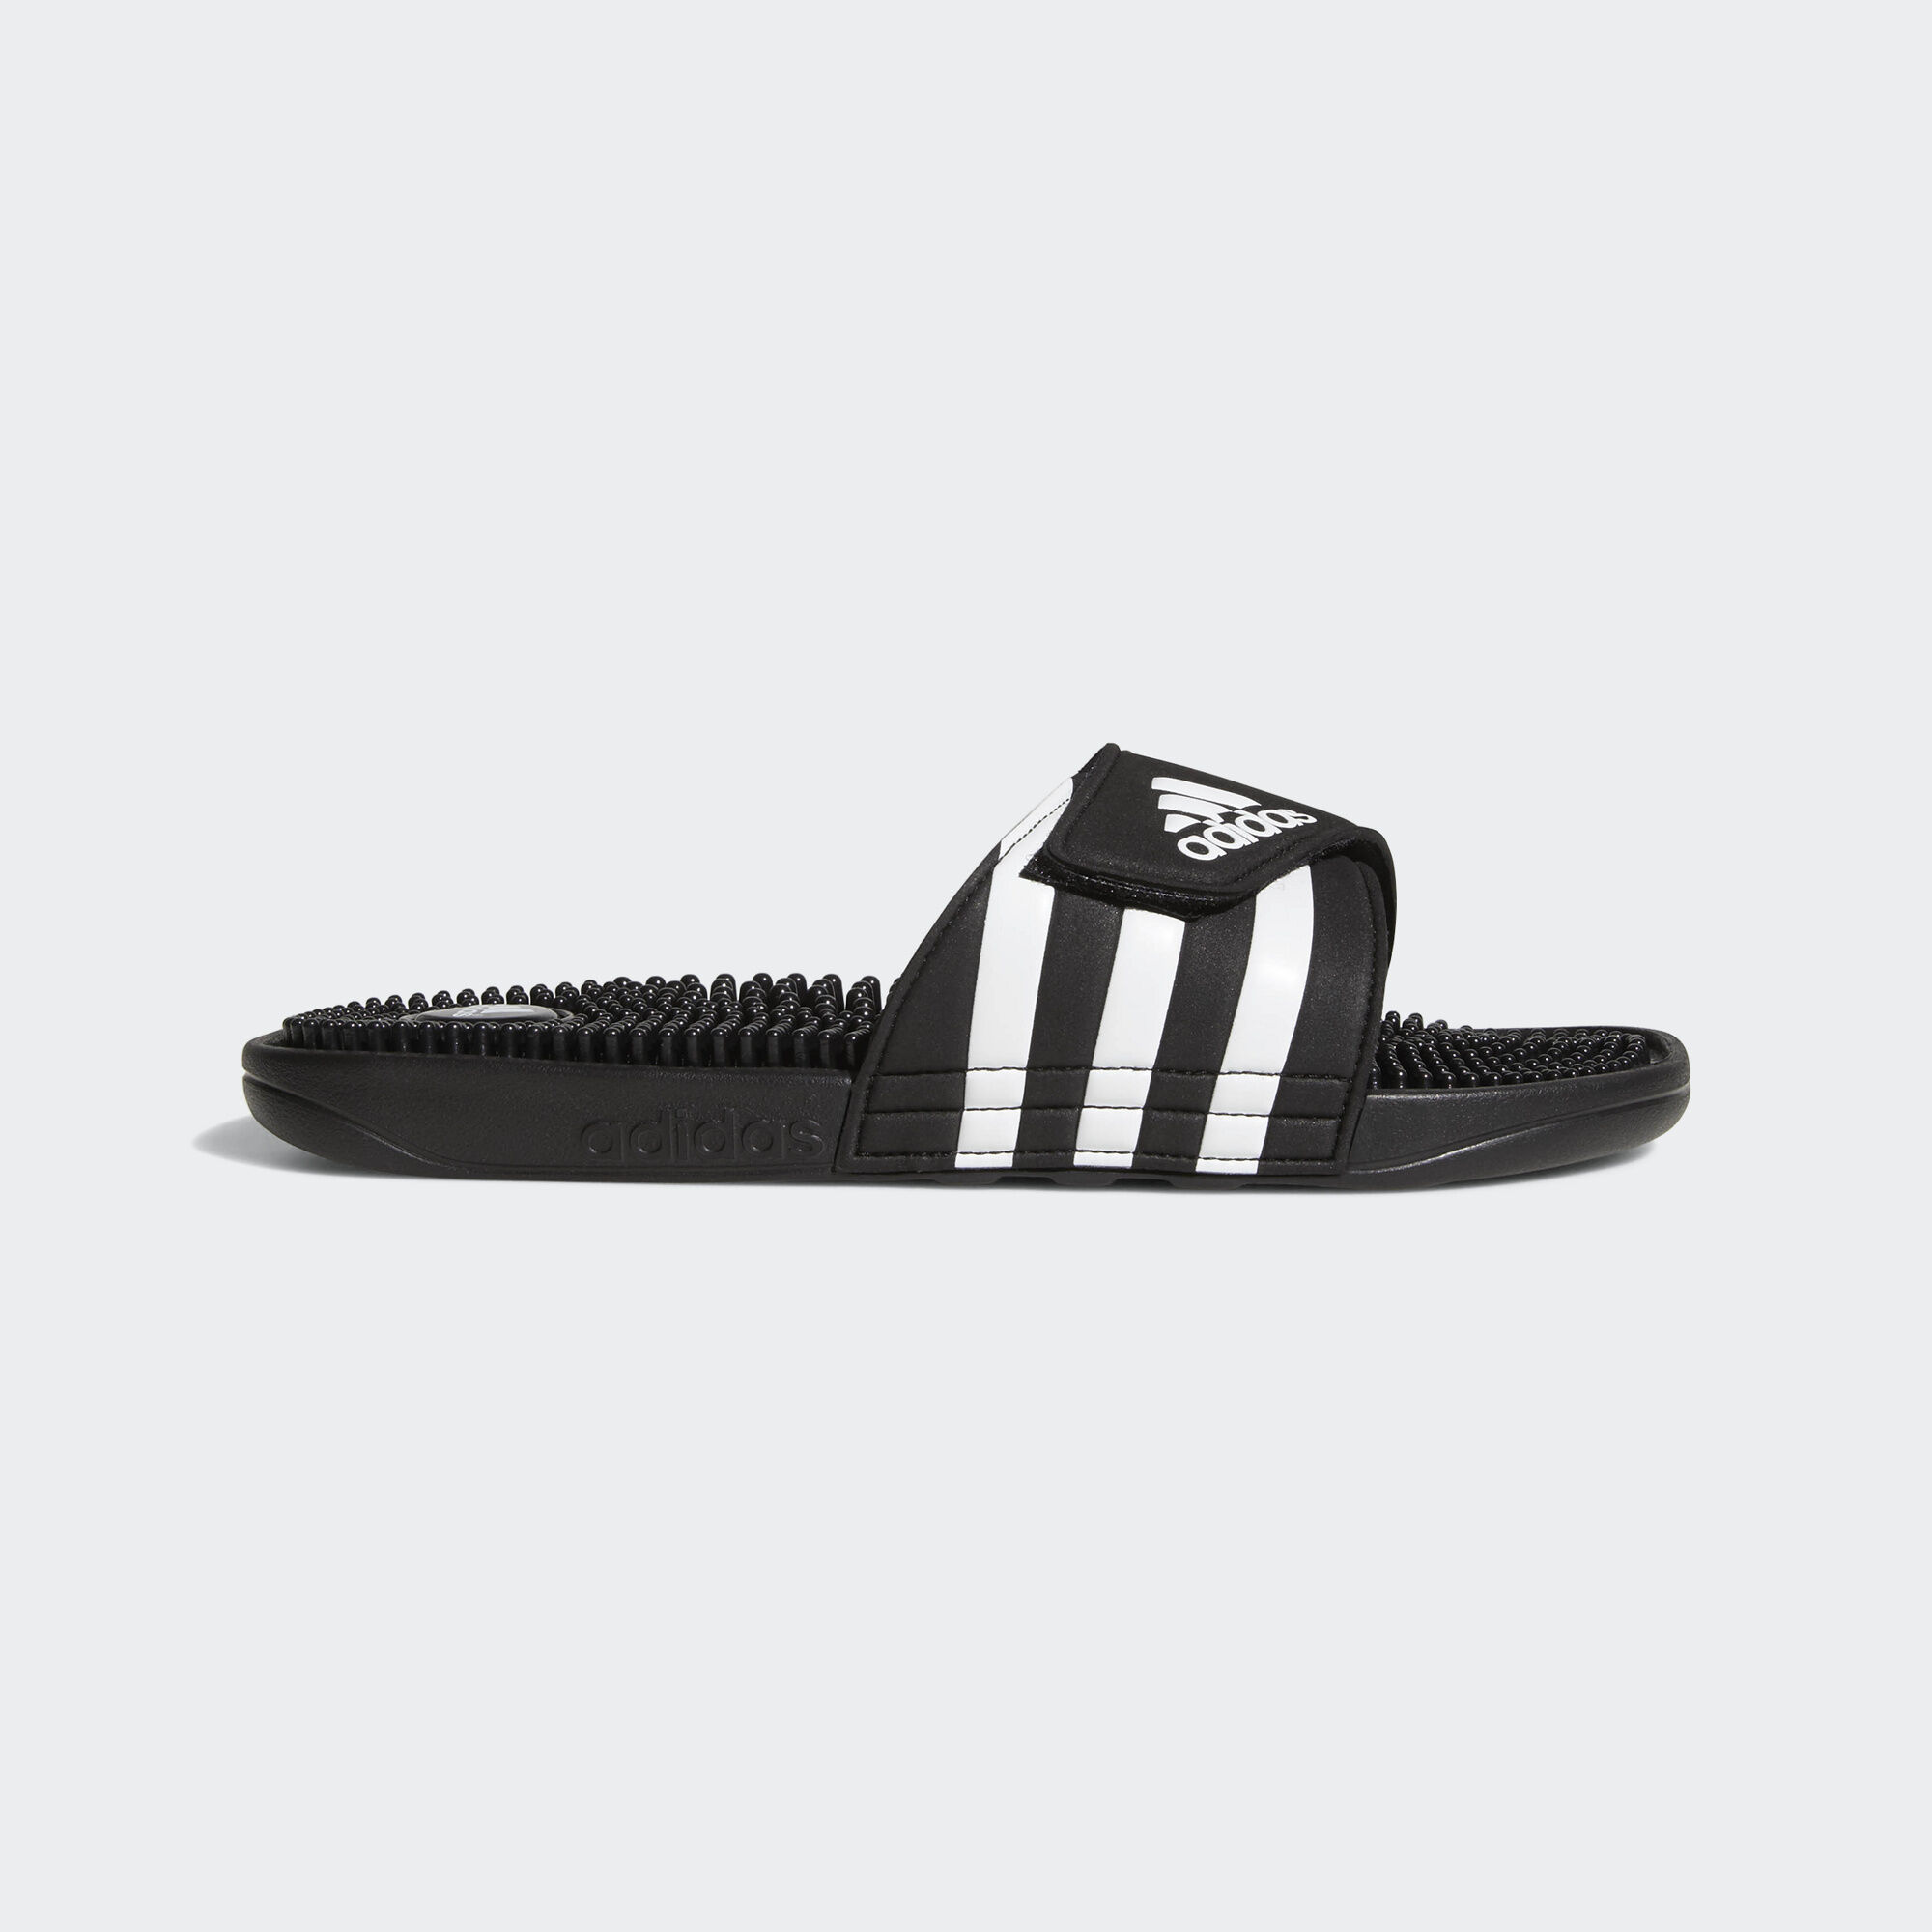 0f7805b9877 adidas Official Website